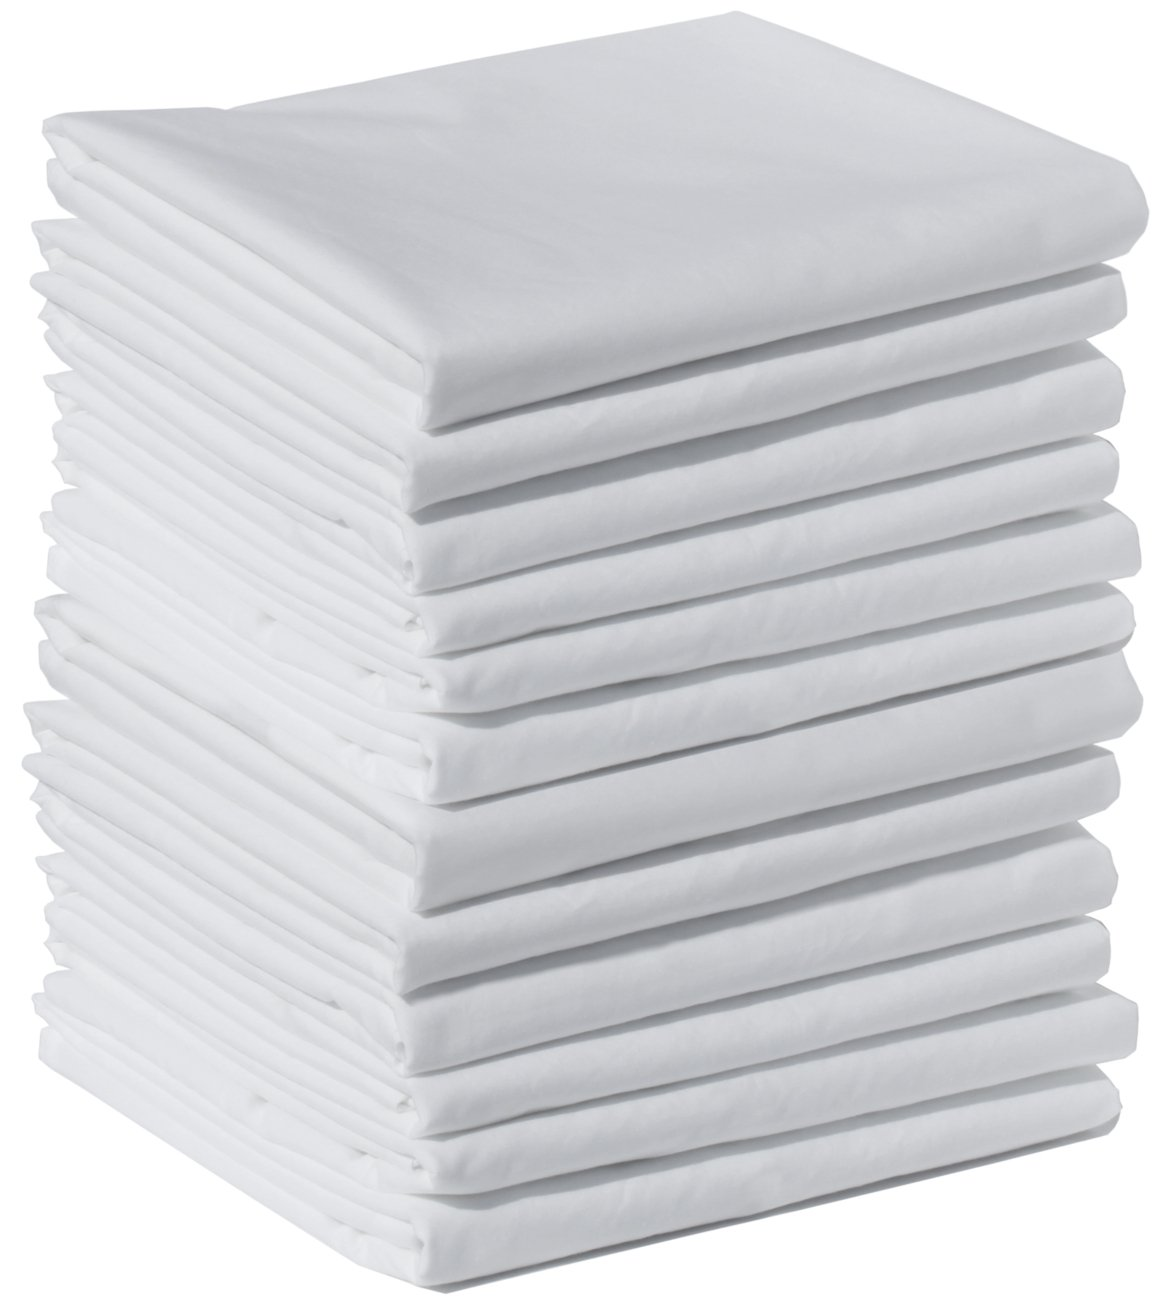 Polycotton Bulk Pack of 12 King Size Pillowcases, White 200 Thread Count, 21''x40'' White (Fits 20'' X36'' Pillow), 1 Dozen, Perfect for Physical Therapy Clinics, Hotels, Camps …